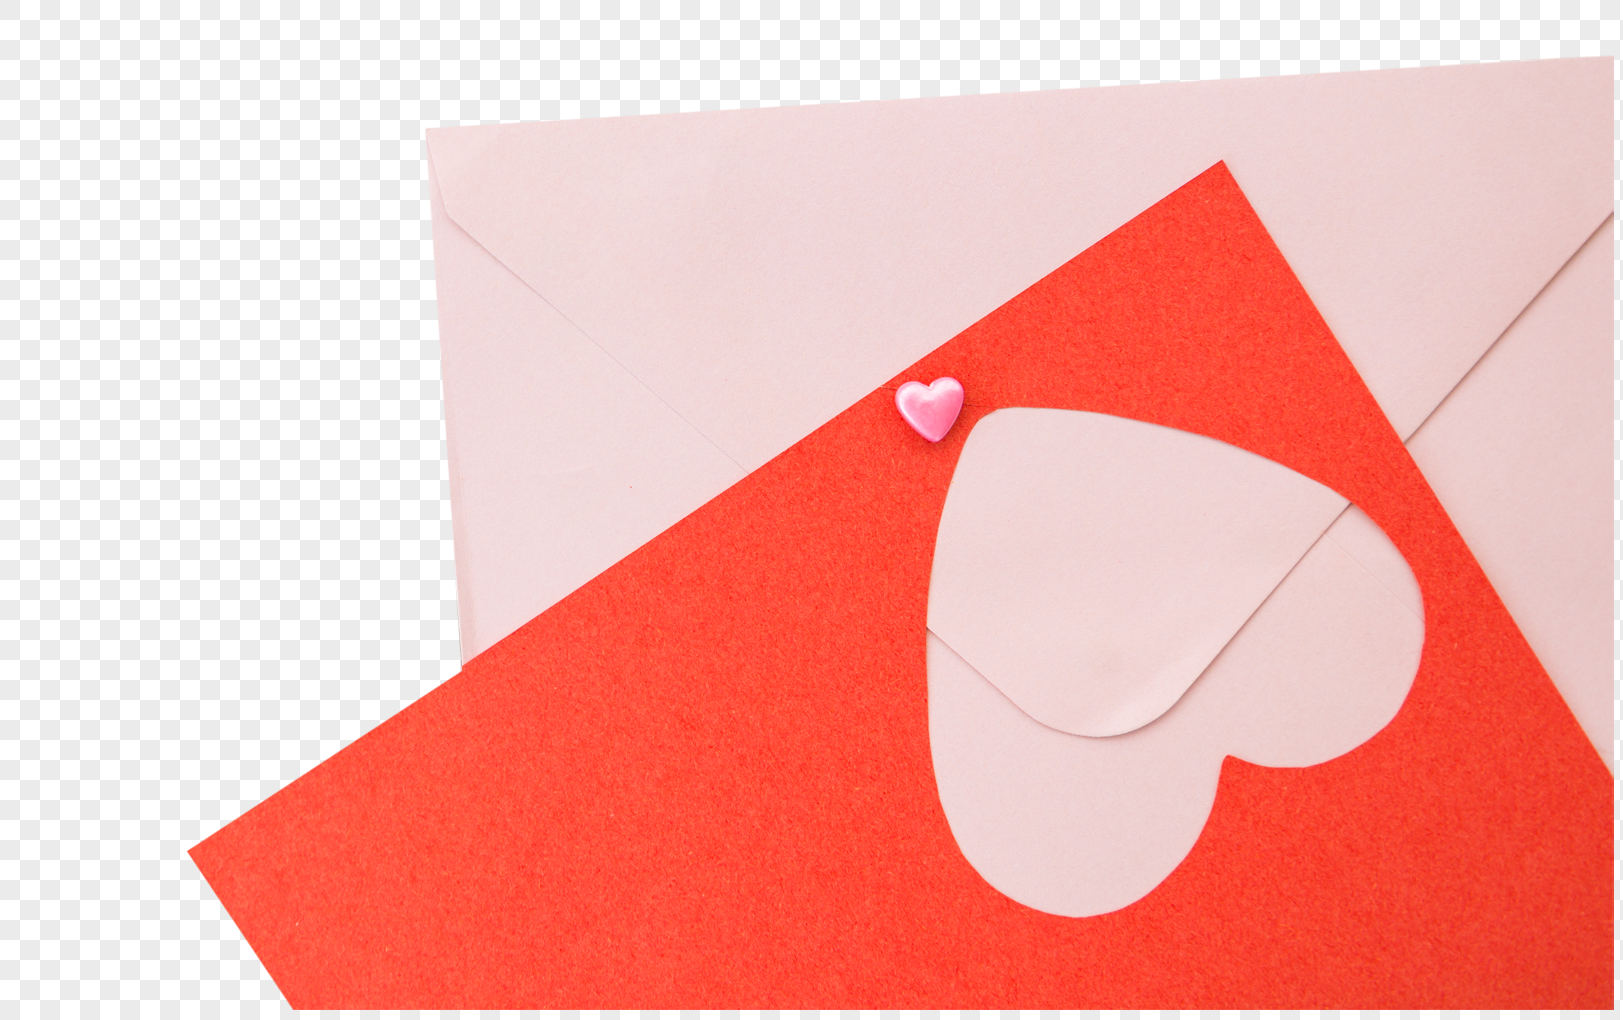 520 Love Envelopes On Valentines Day Png Image Picture Free Download